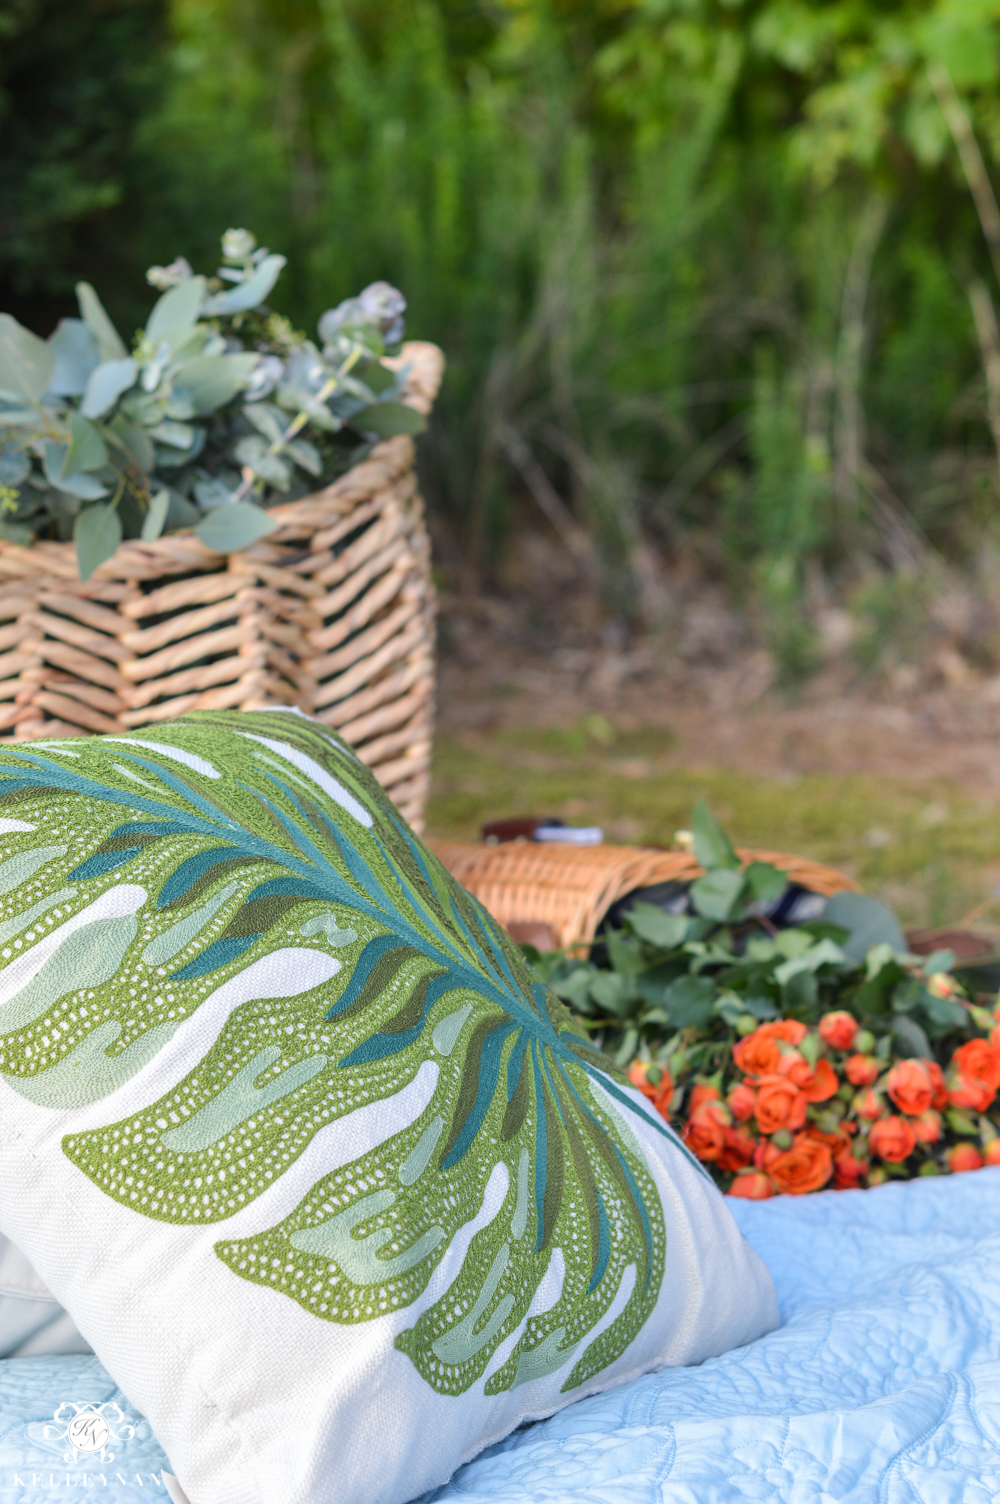 Picnic and Tailgate Ideas and Setup-pillows baskets and flowers